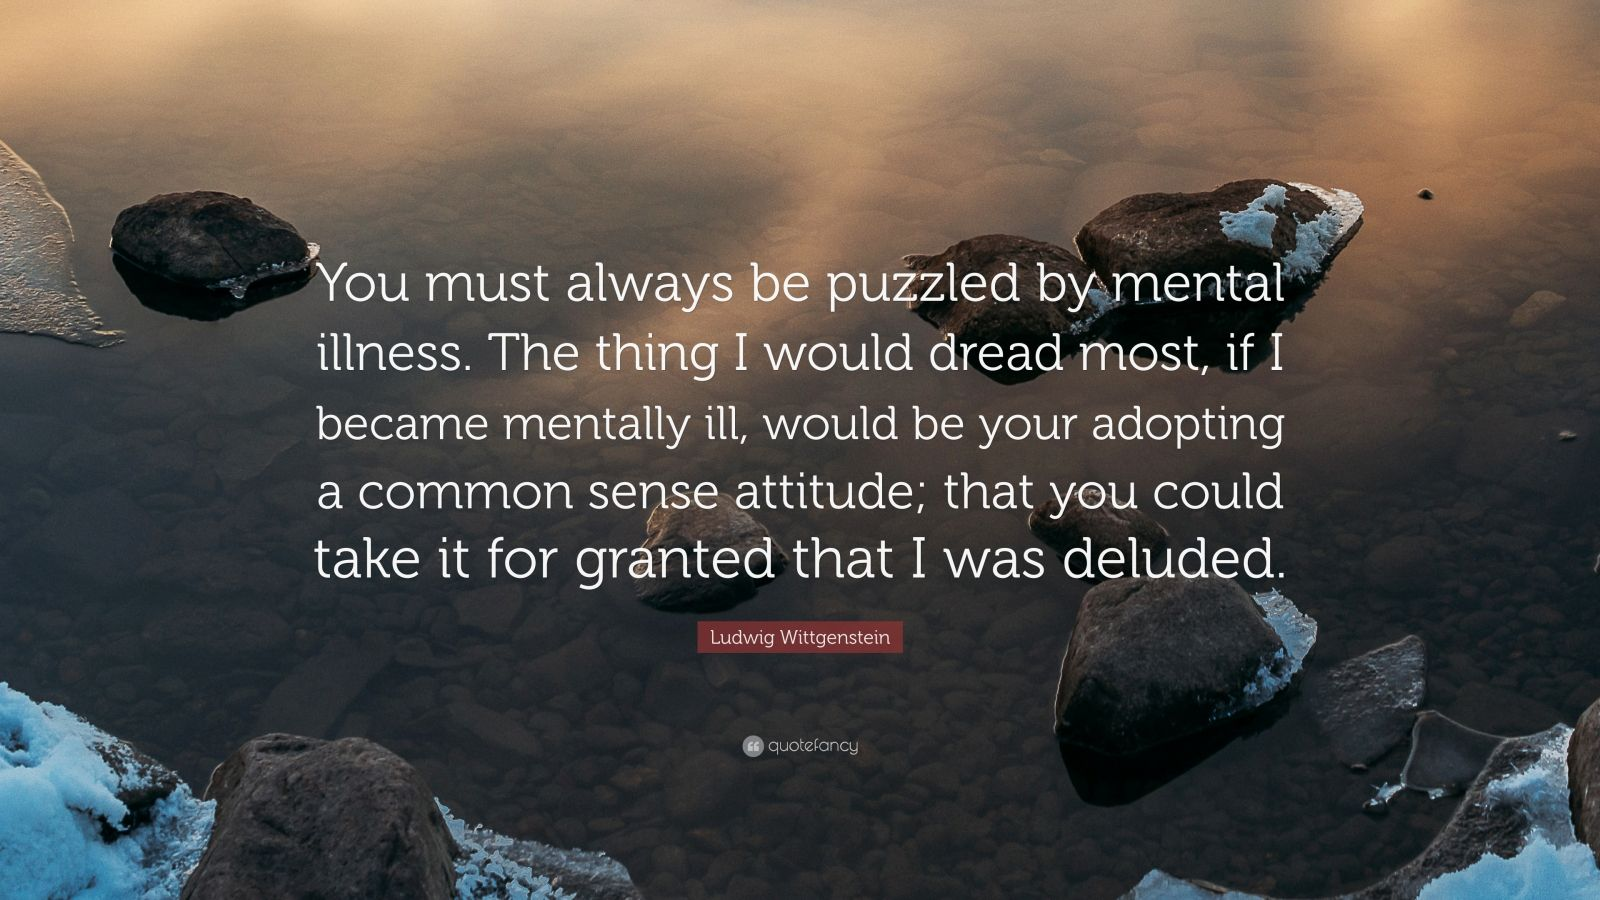 "Ludwig Wittgenstein Quote: ""You must always be puzzled by mental illness. The thing I would dread most, if I became mentally ill, would be your adopting a common sense attitude; that you could take it for granted that I was deluded."""